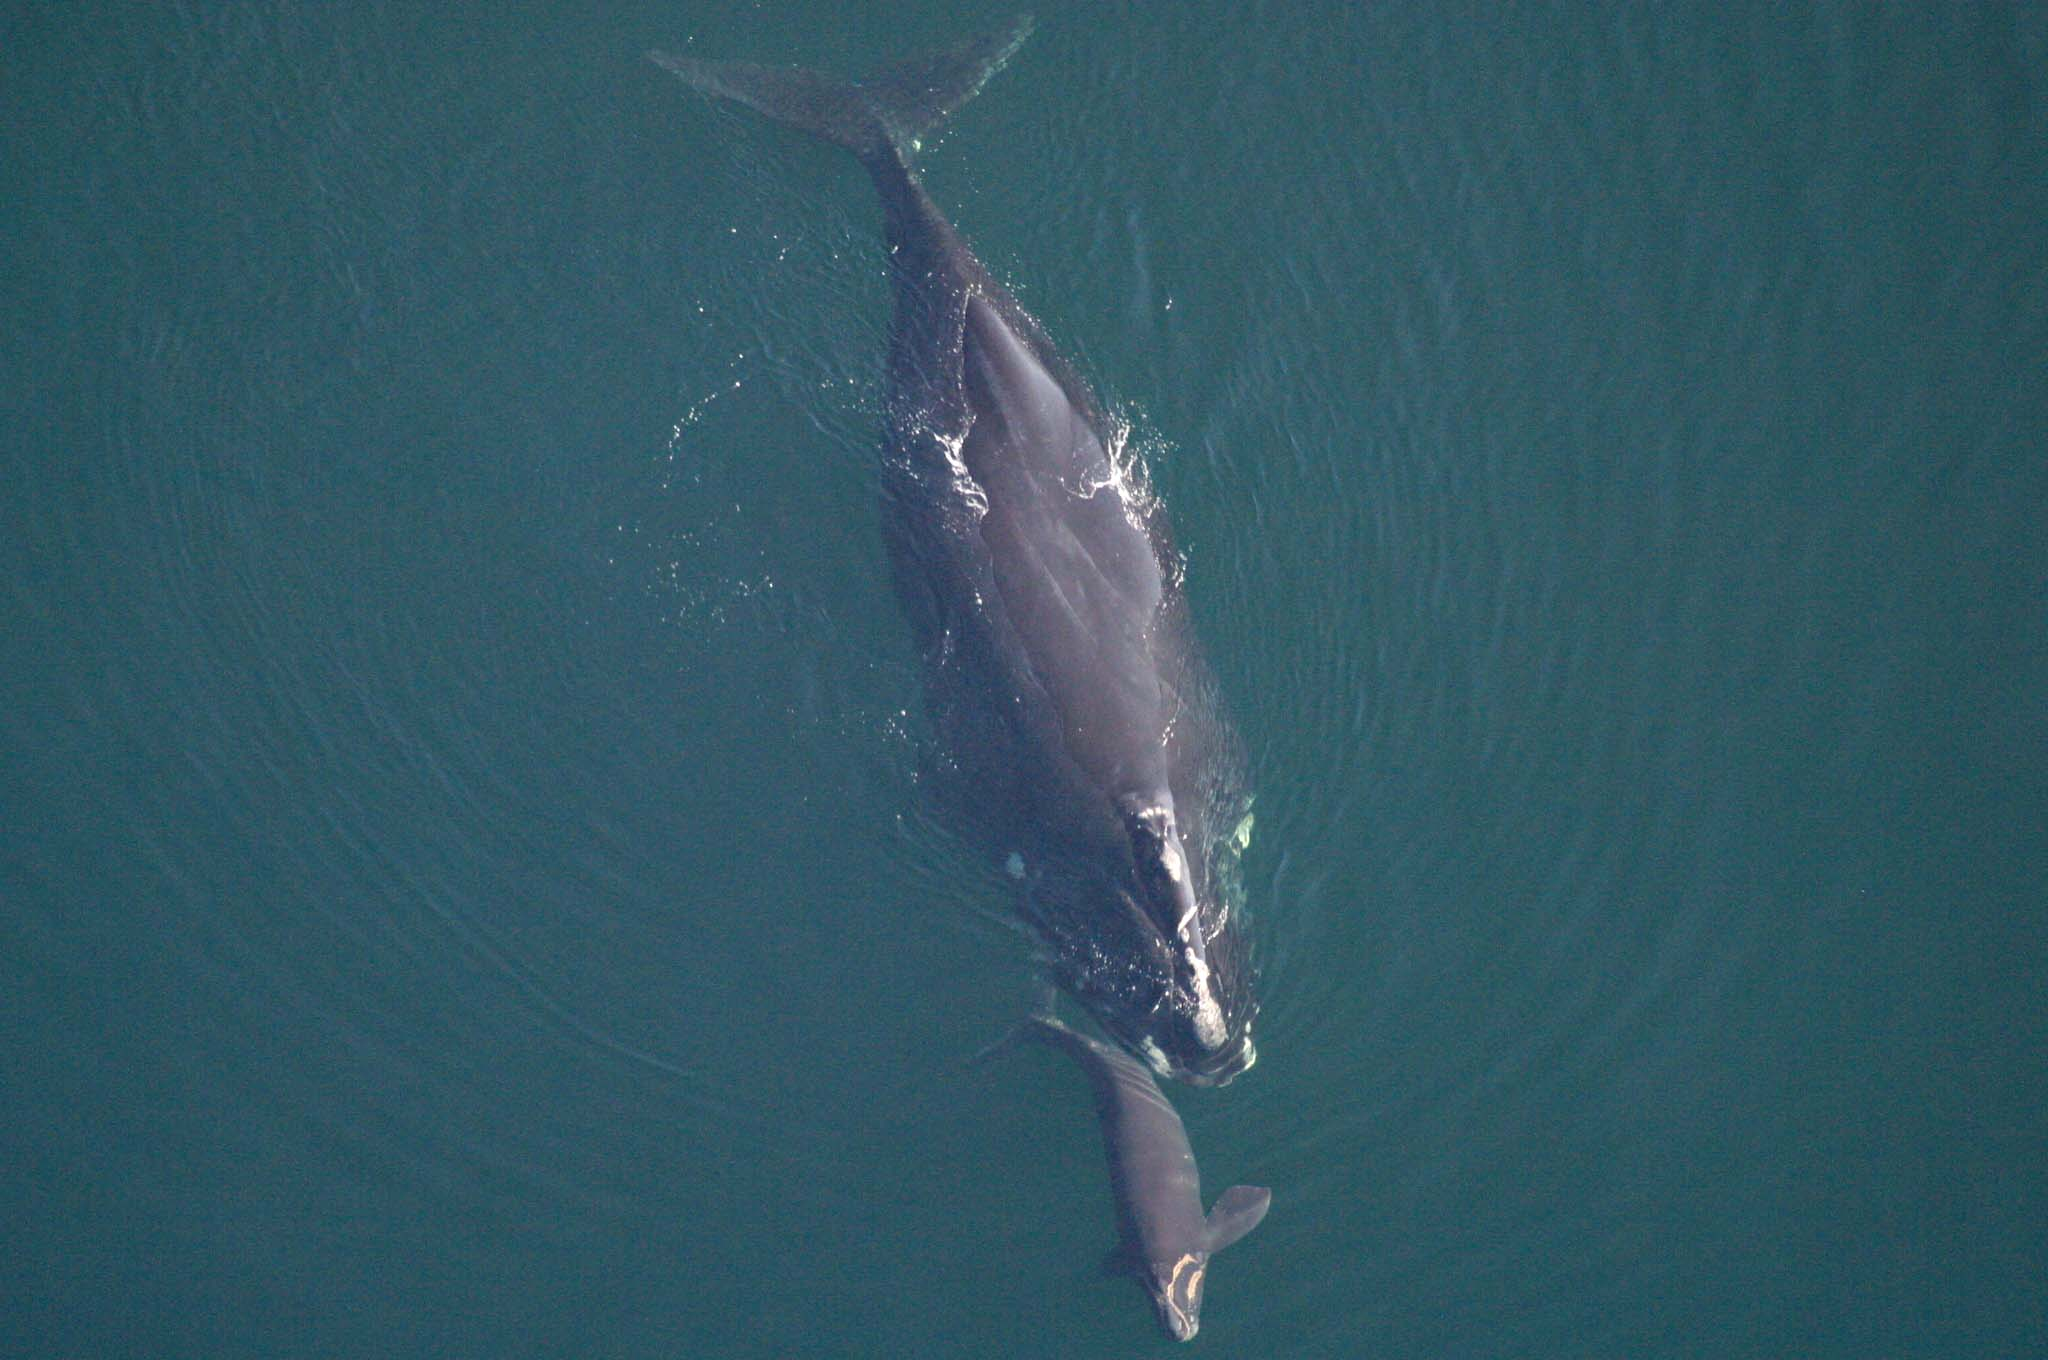 rightwhale_georgia_dnr.jpg